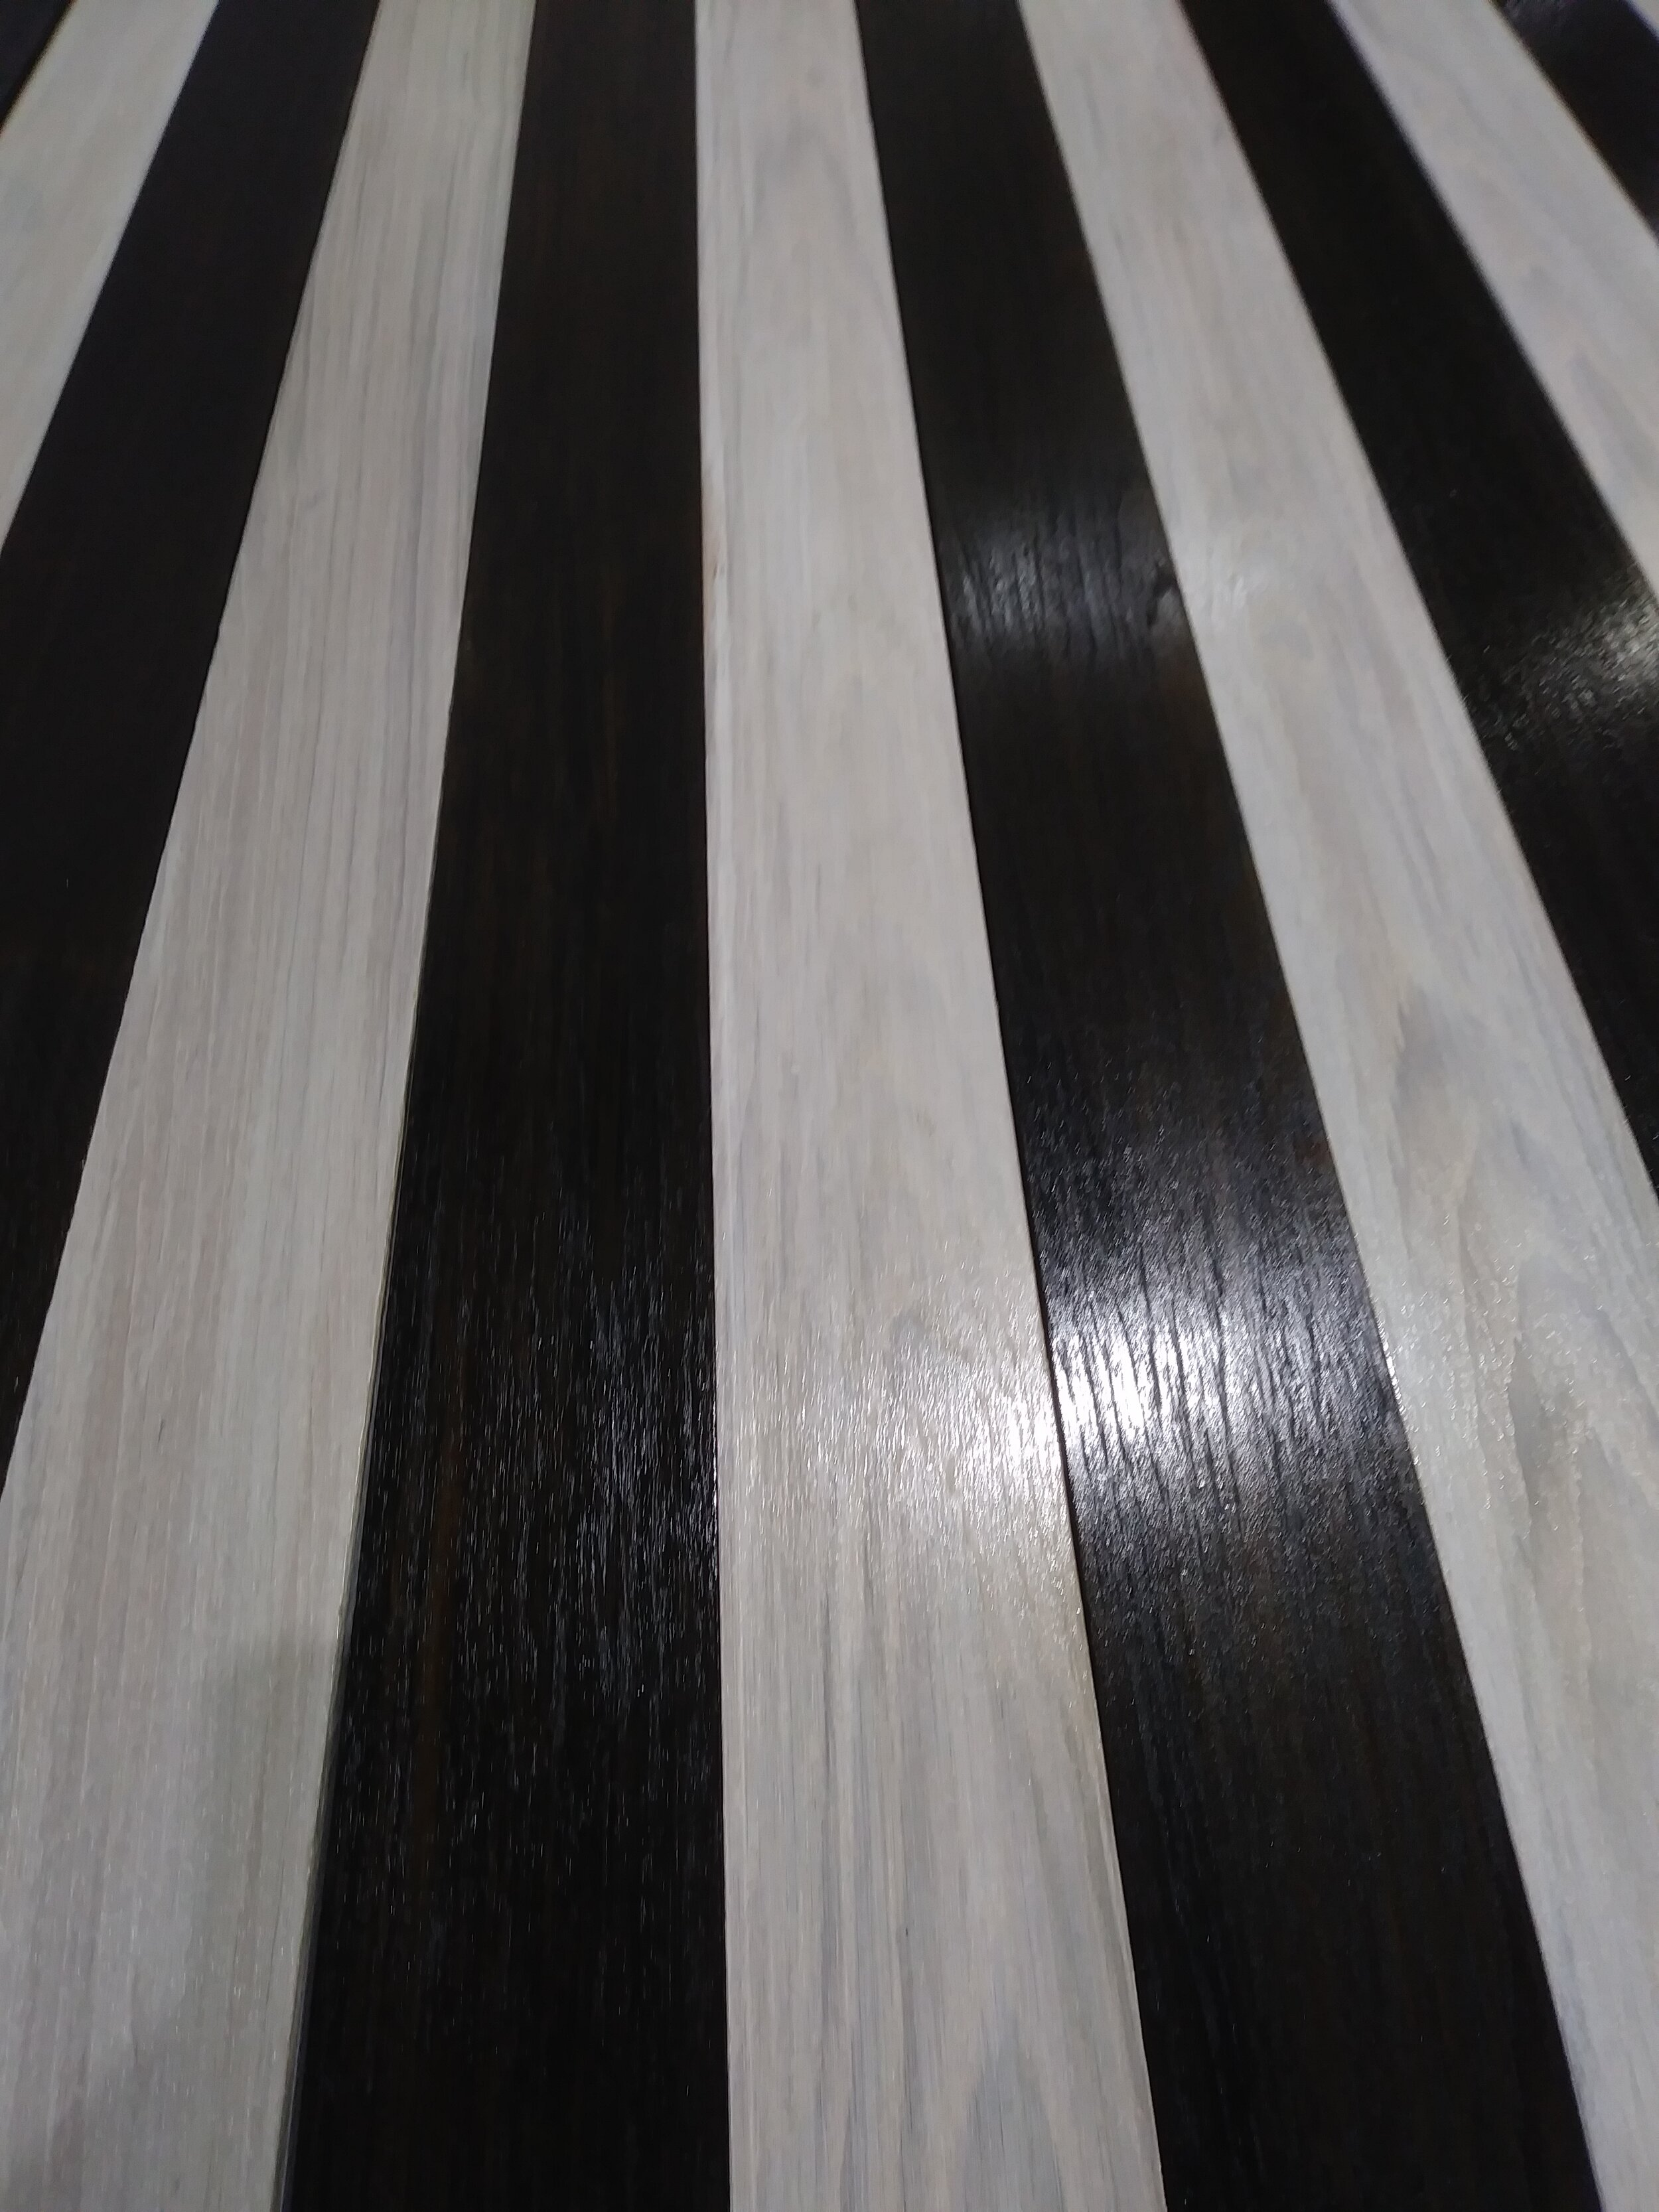 Stained Stripes.jpg